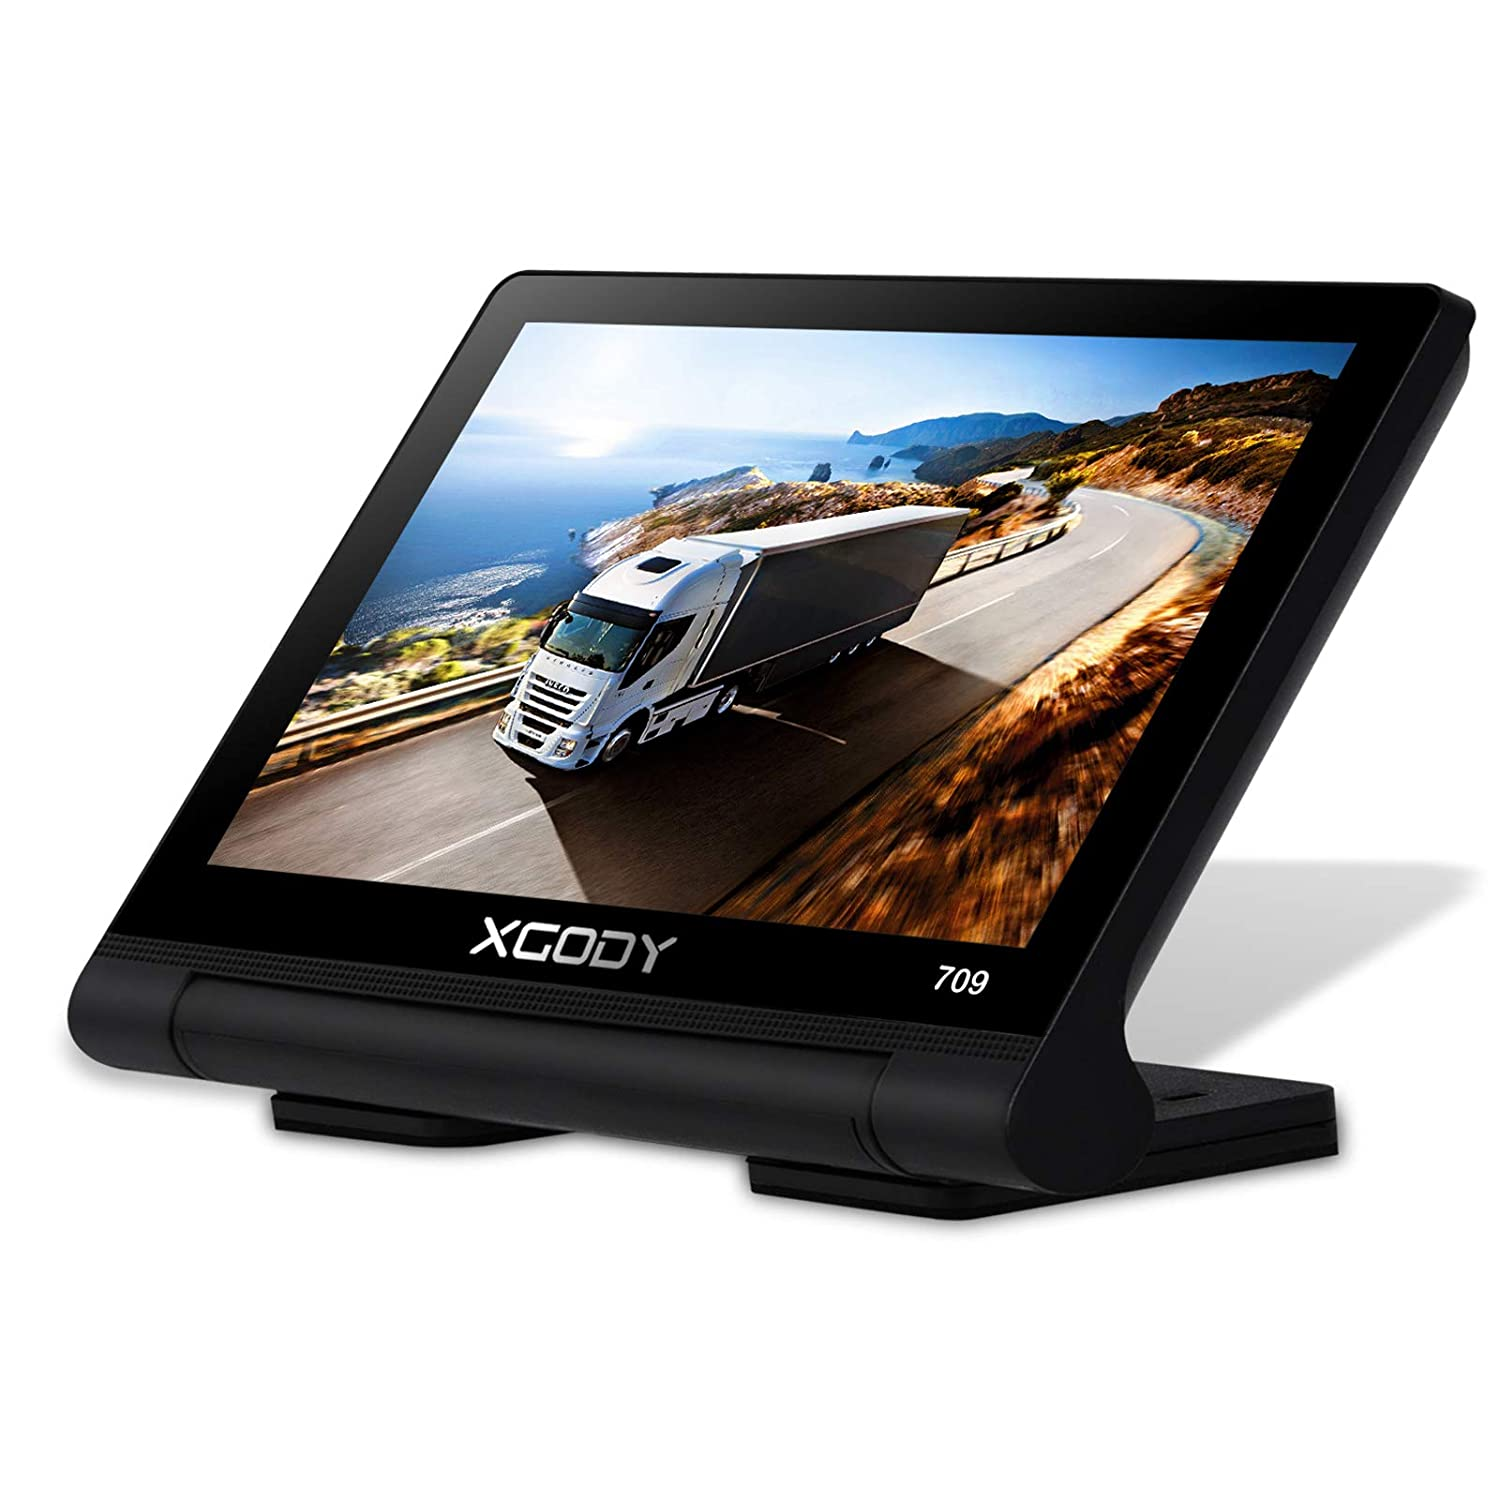 Xgody Portable Car Truckers GPS Sat Nav 709BT Navigation System 7 Inch Capacitive Touch Screen 8GB ROM 256 RAM Support Free Lifetime Maps for Canada/USA Updates Shenzhen Xin Sheng Shang Technology Co. Ltd 709 with Bt